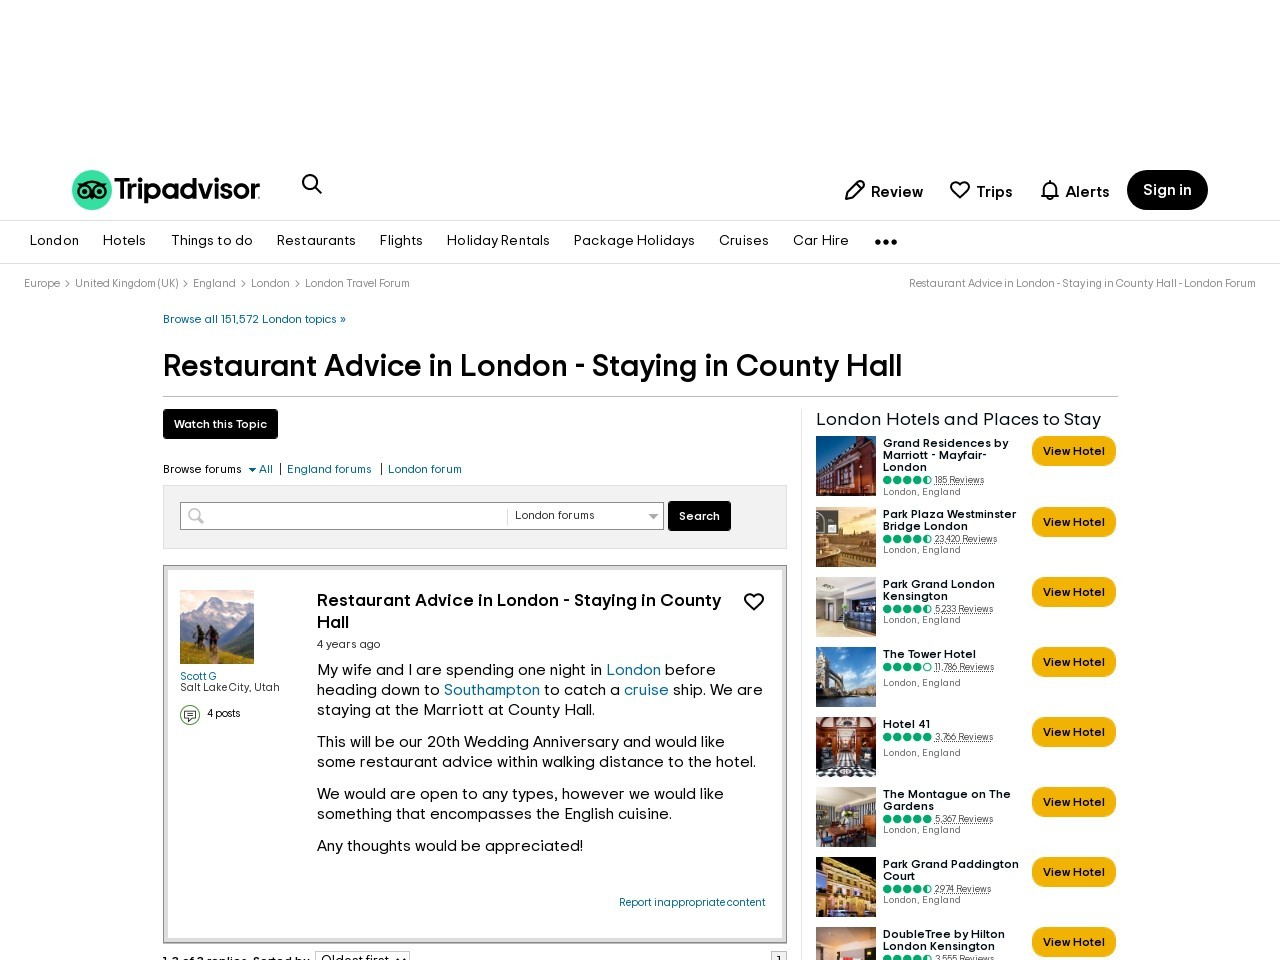 Restaurant Advice in London | Staying in County Hall